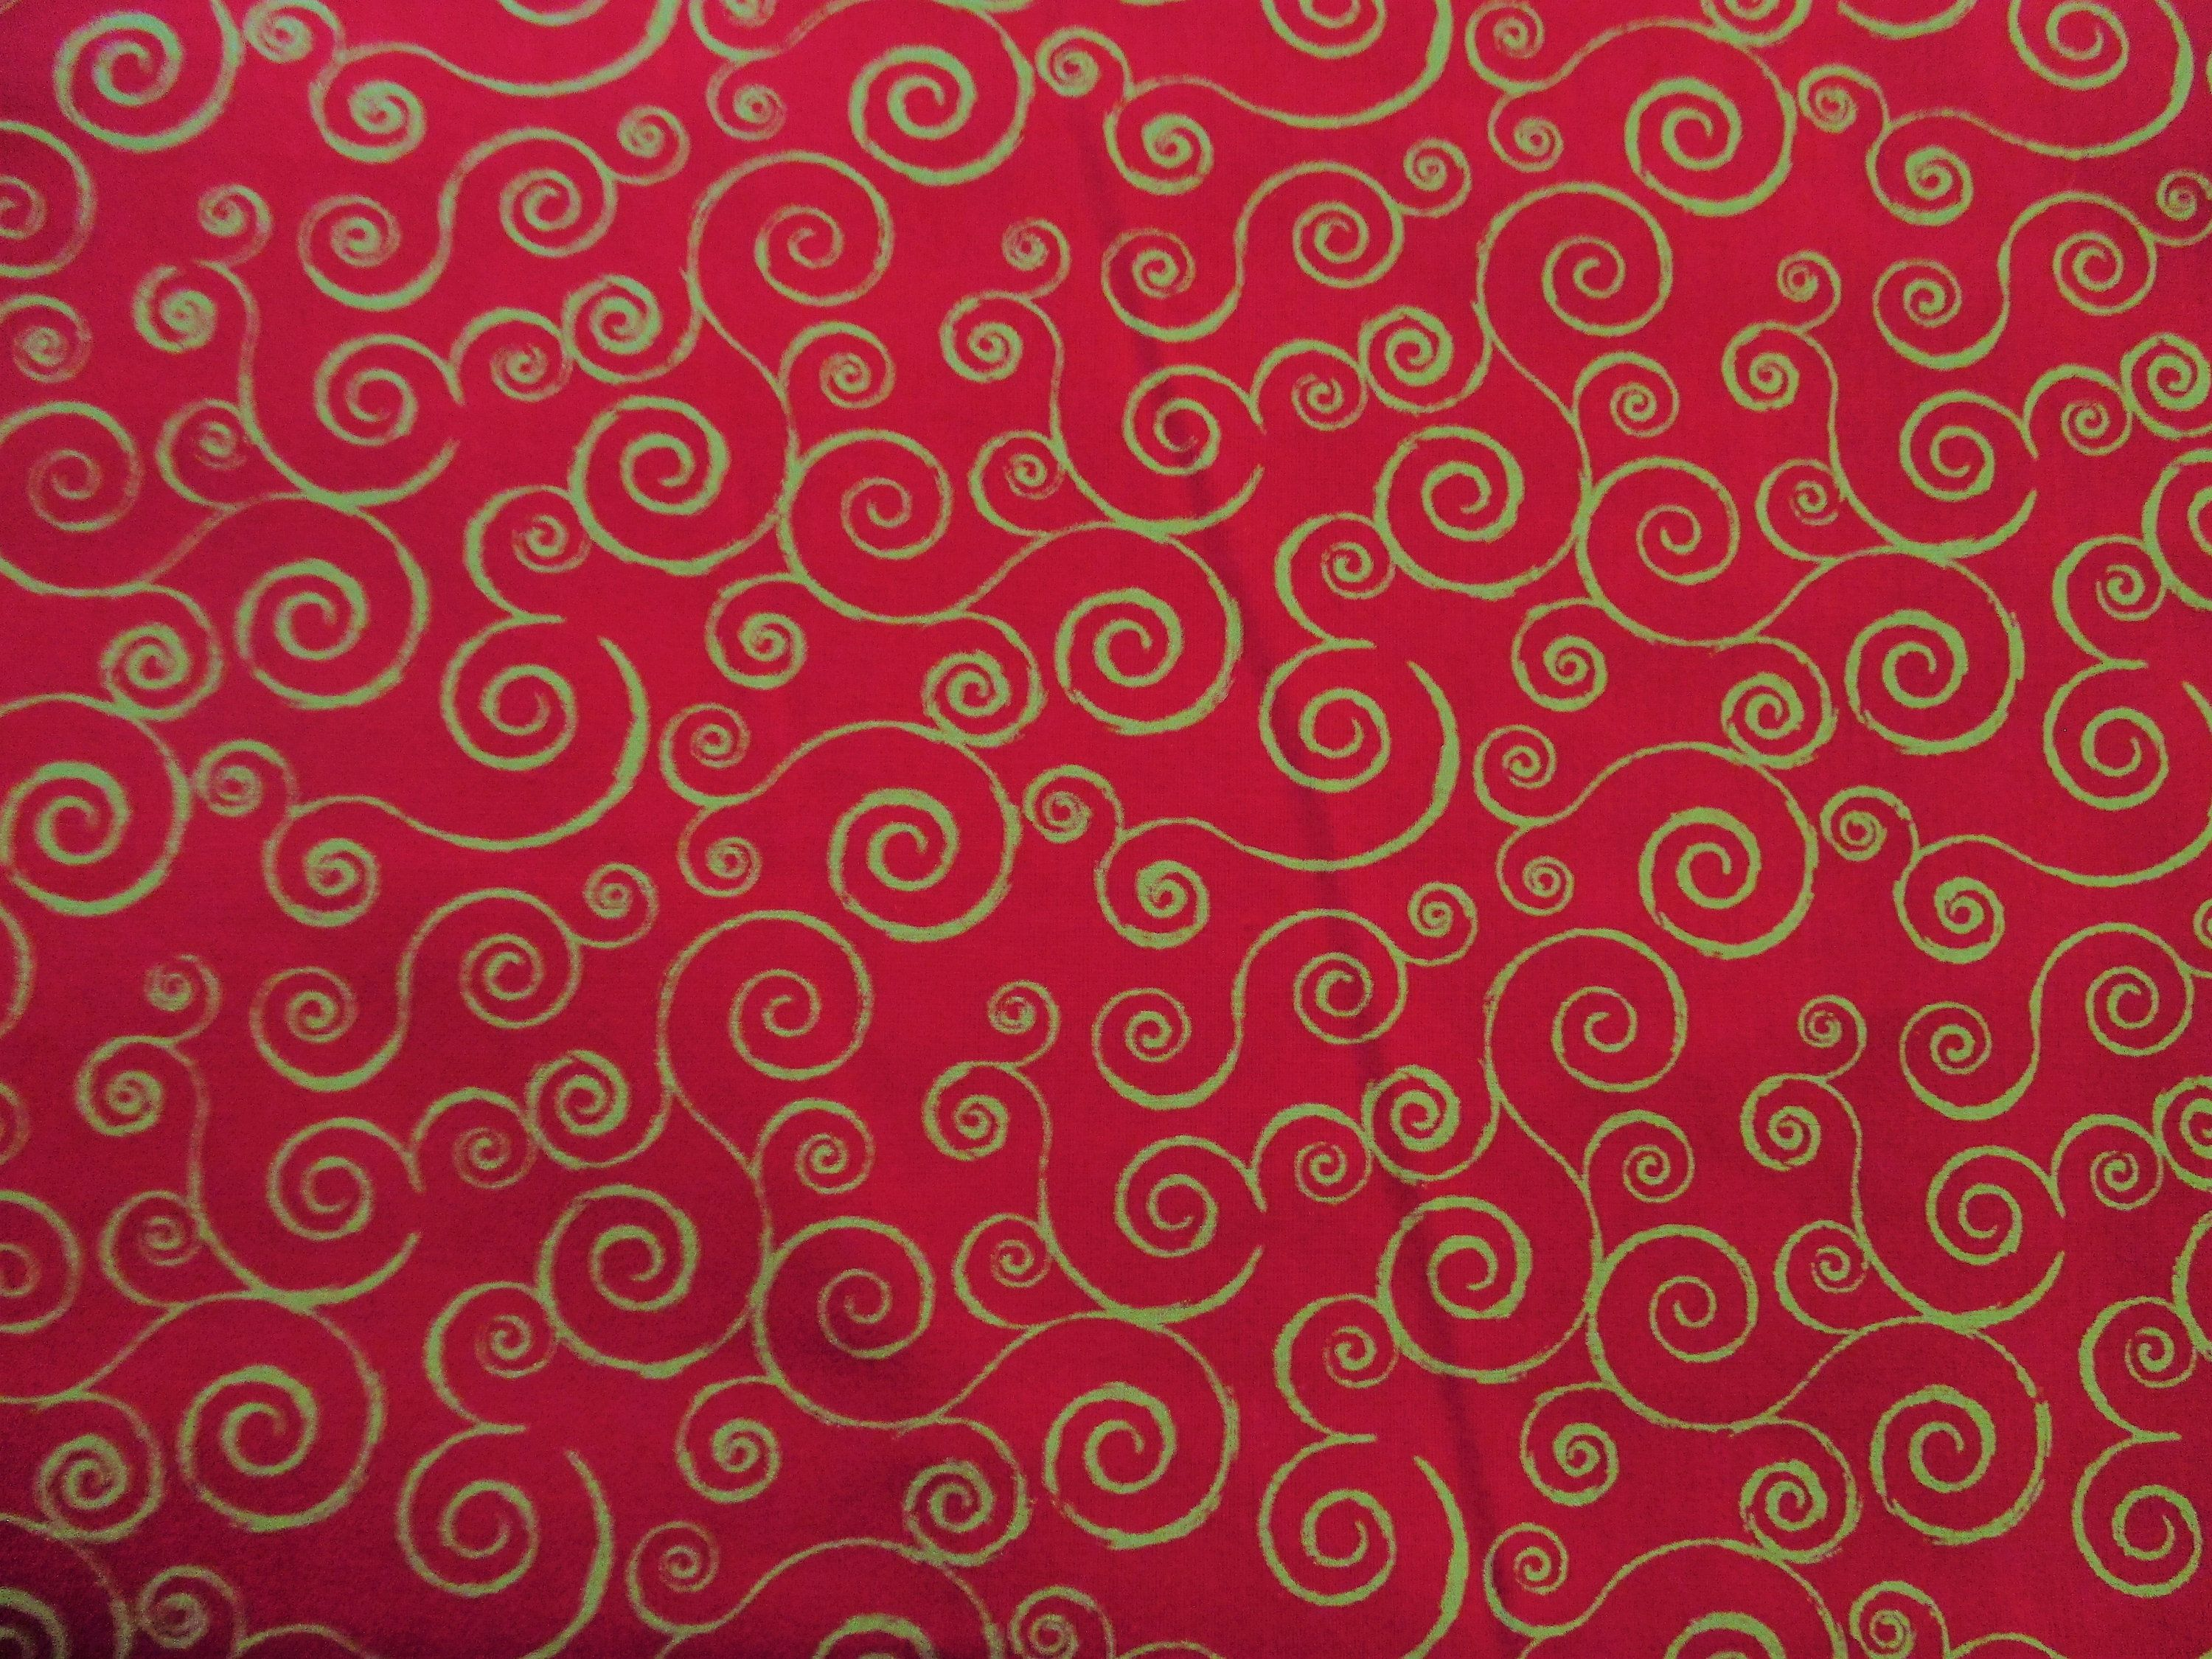 Keepsake Calico Fabric Red Brush Stroke Textire 100/% Cotton